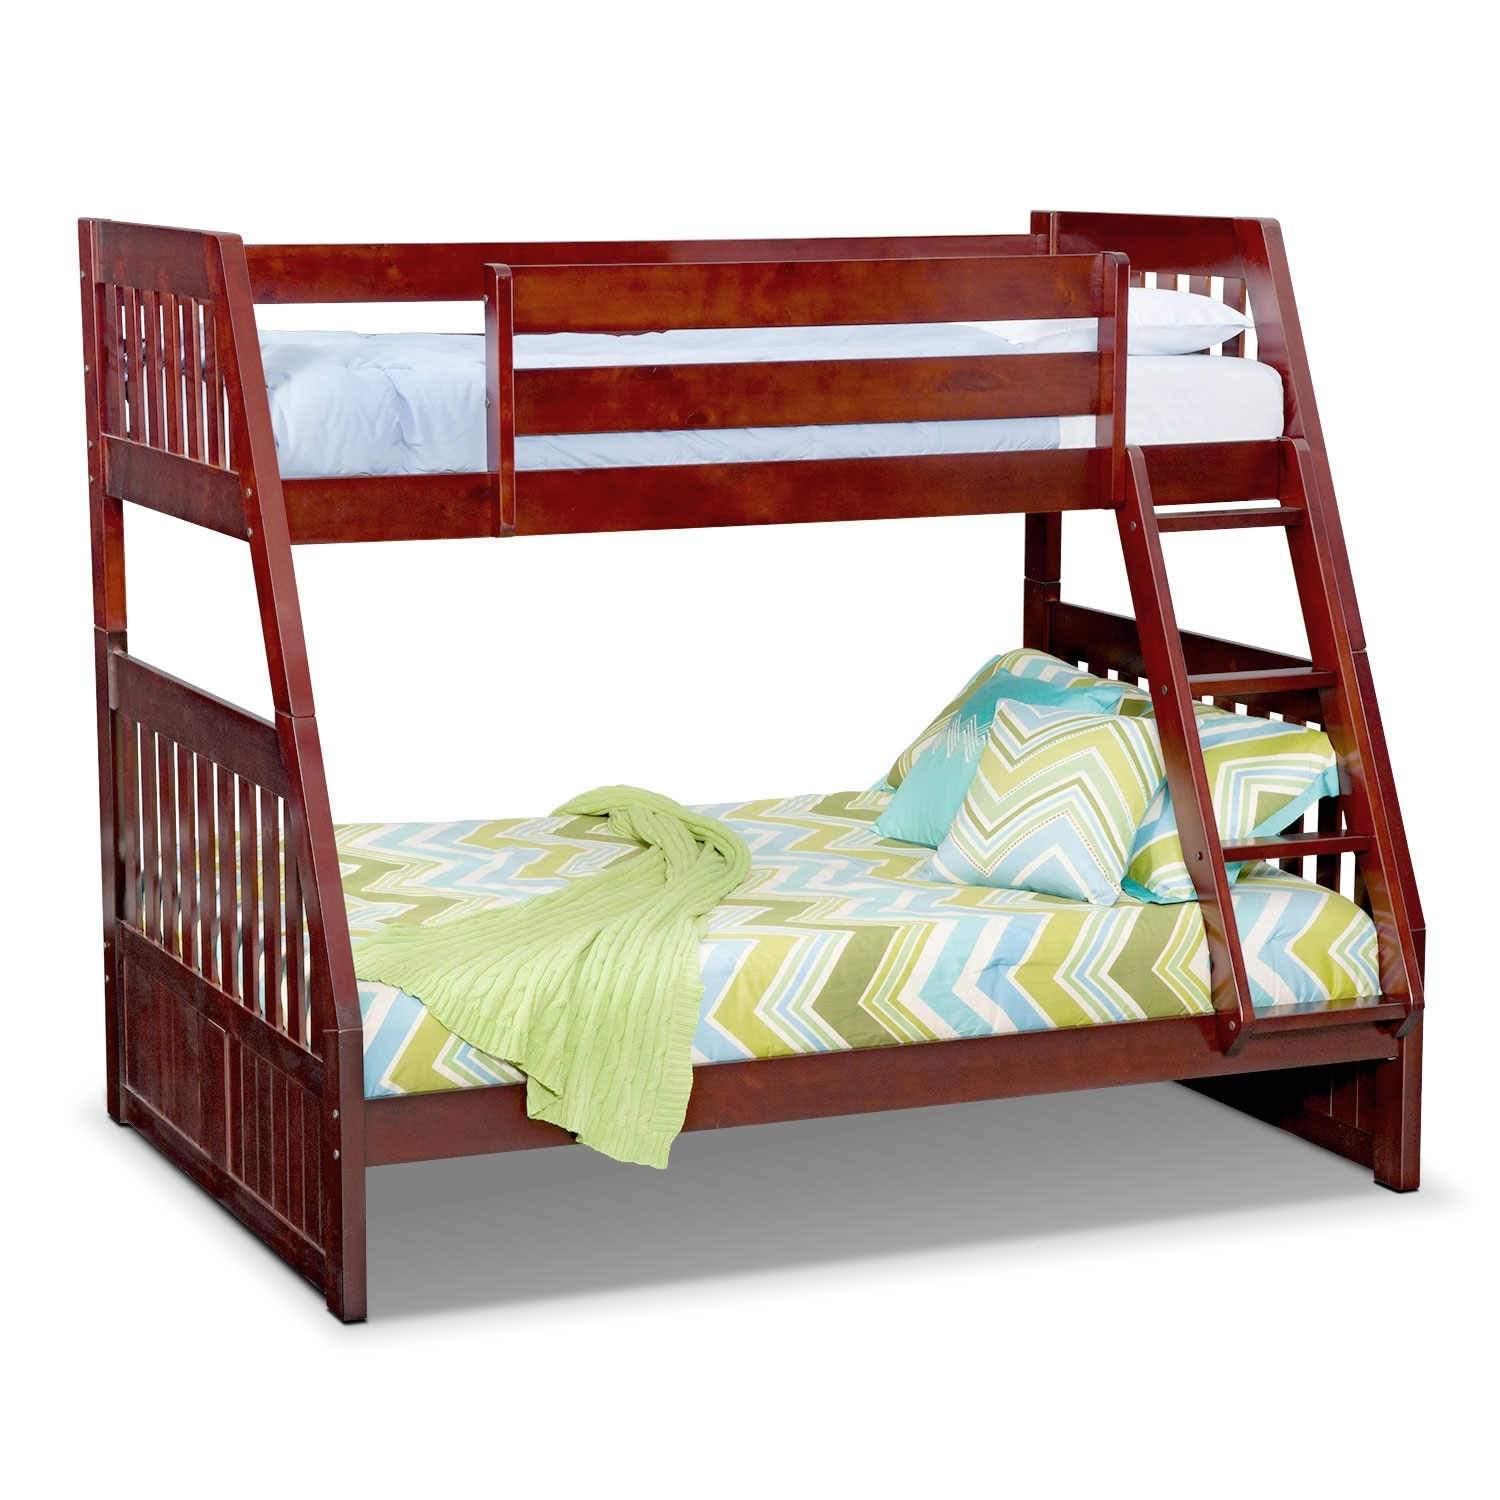 Kids Furniture - Ranger Merlot Twin/Full Bunk Bed